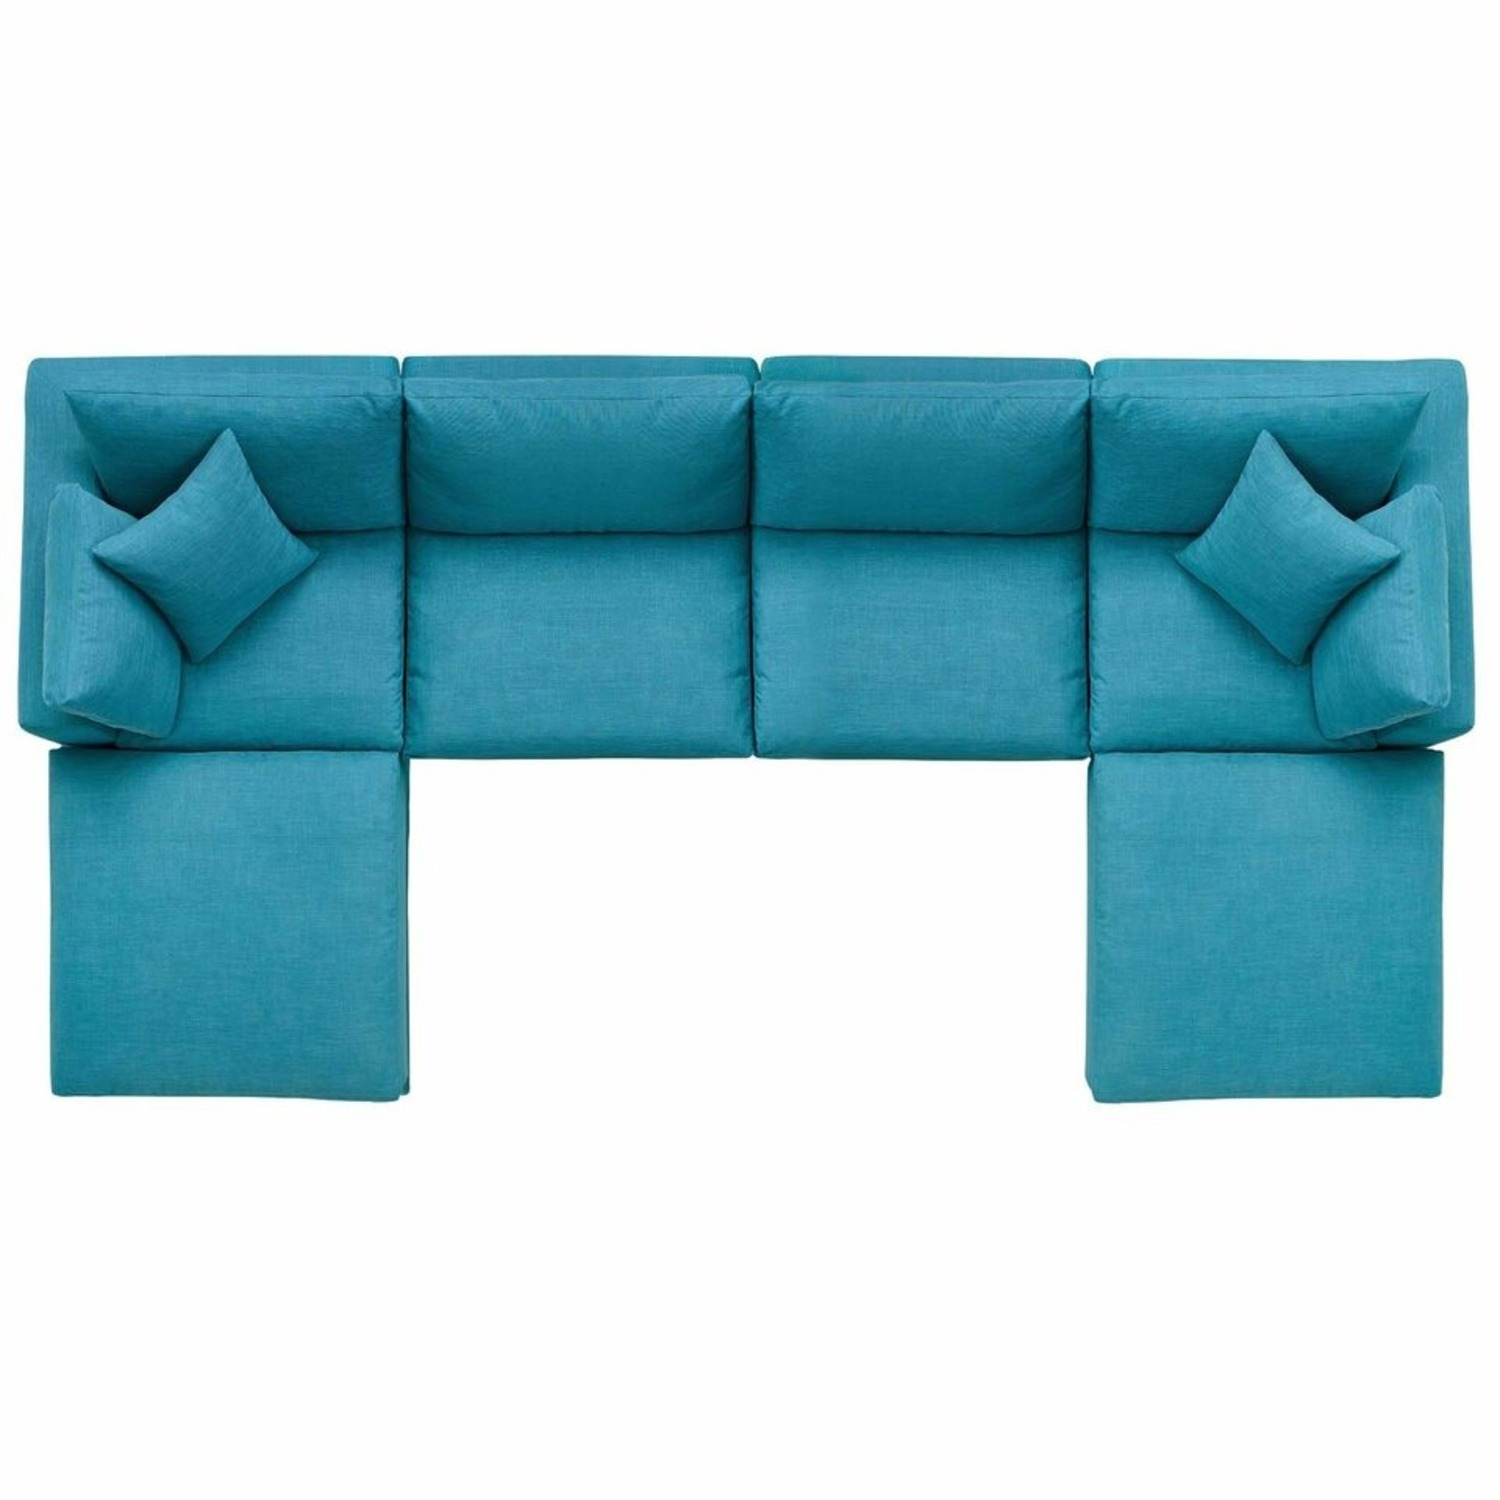 6-Piece Sectional Sofa In Teal Linen Fabric - image-1